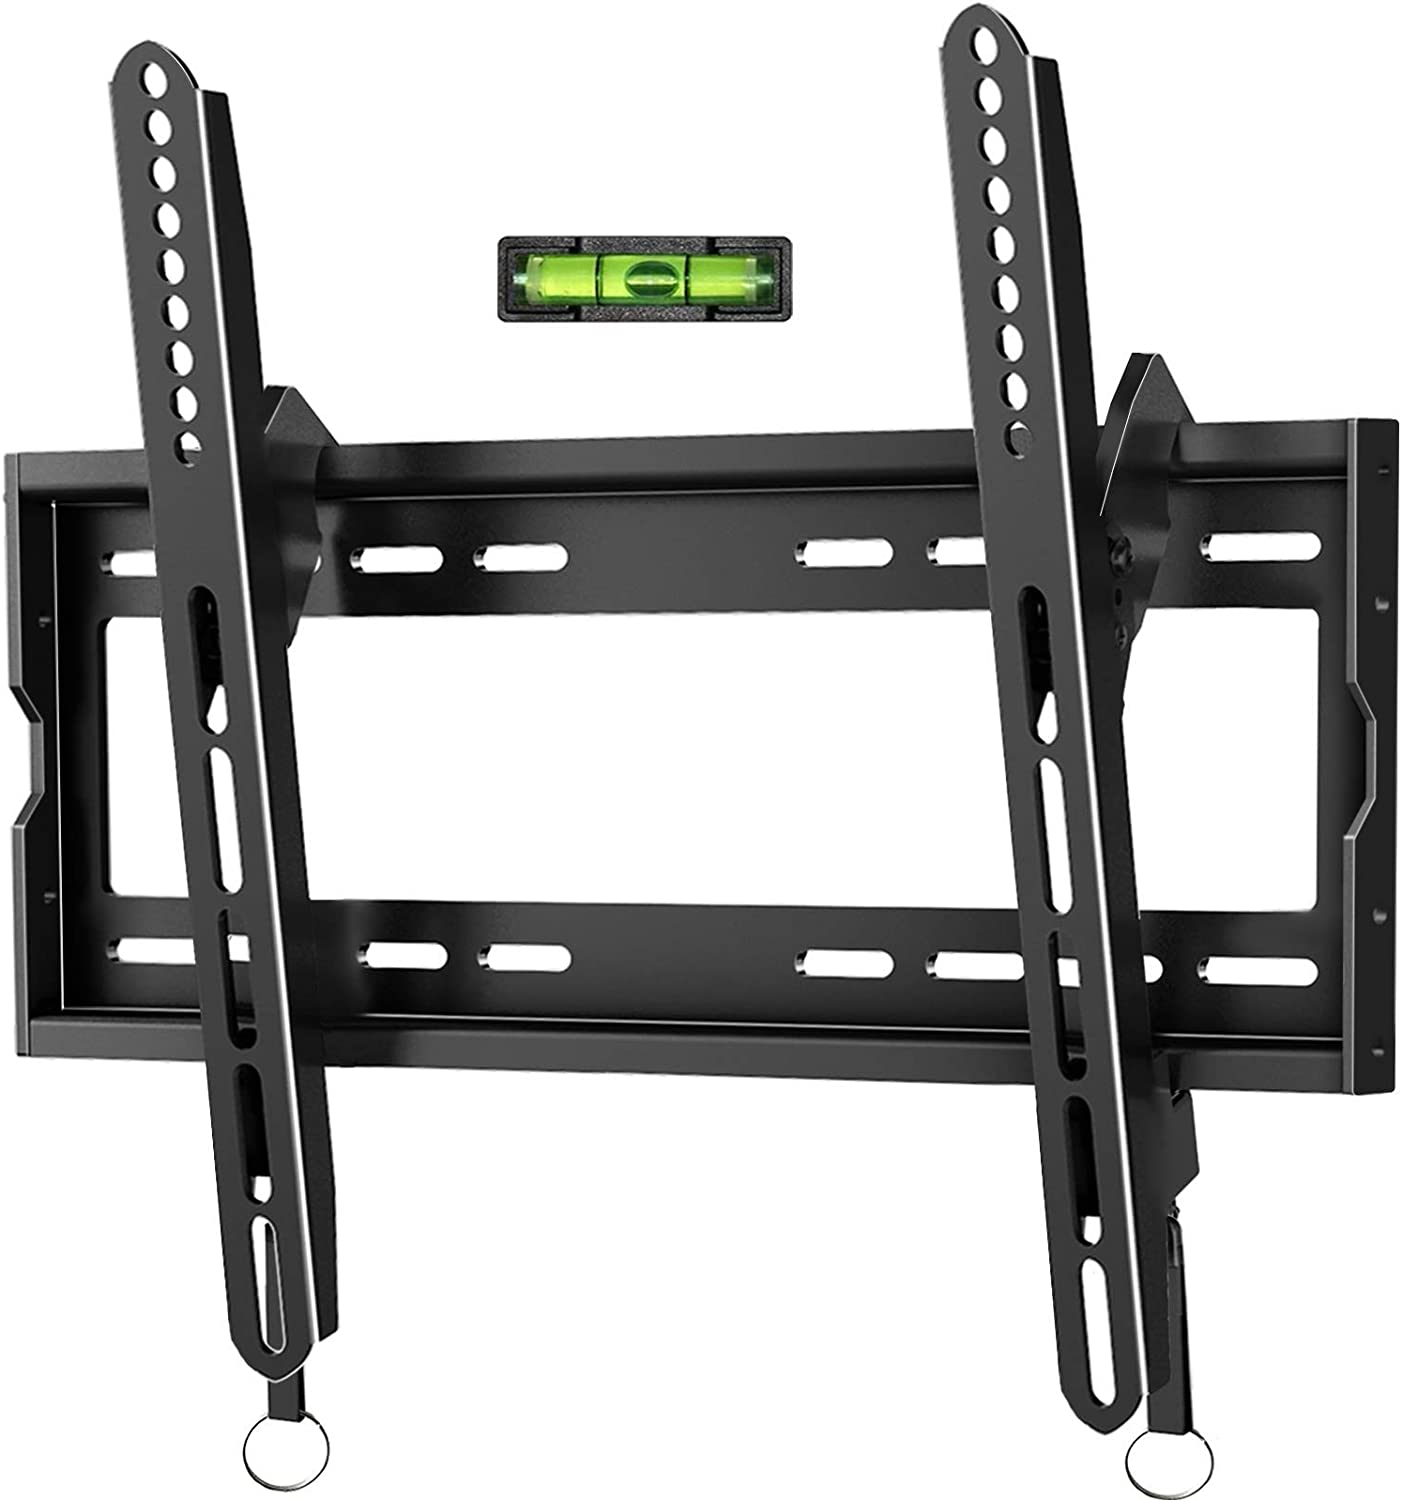 BLUE STONE Tilt TV Wall Mount for TVs Pro Bargain Most Inches 32-65 OFFicial Low